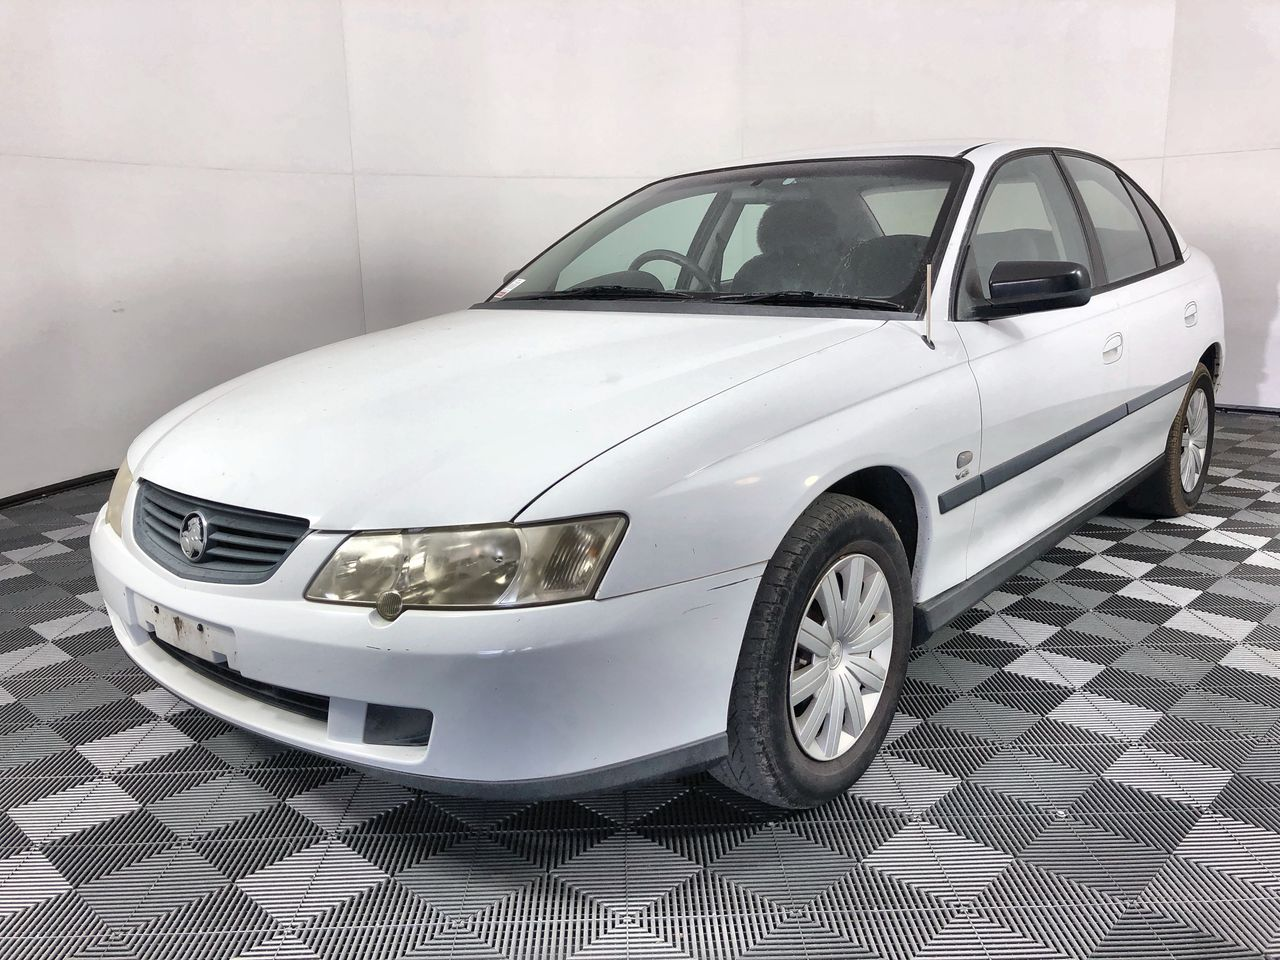 2002 Holden Commodore VY Executive Automatic Sedan